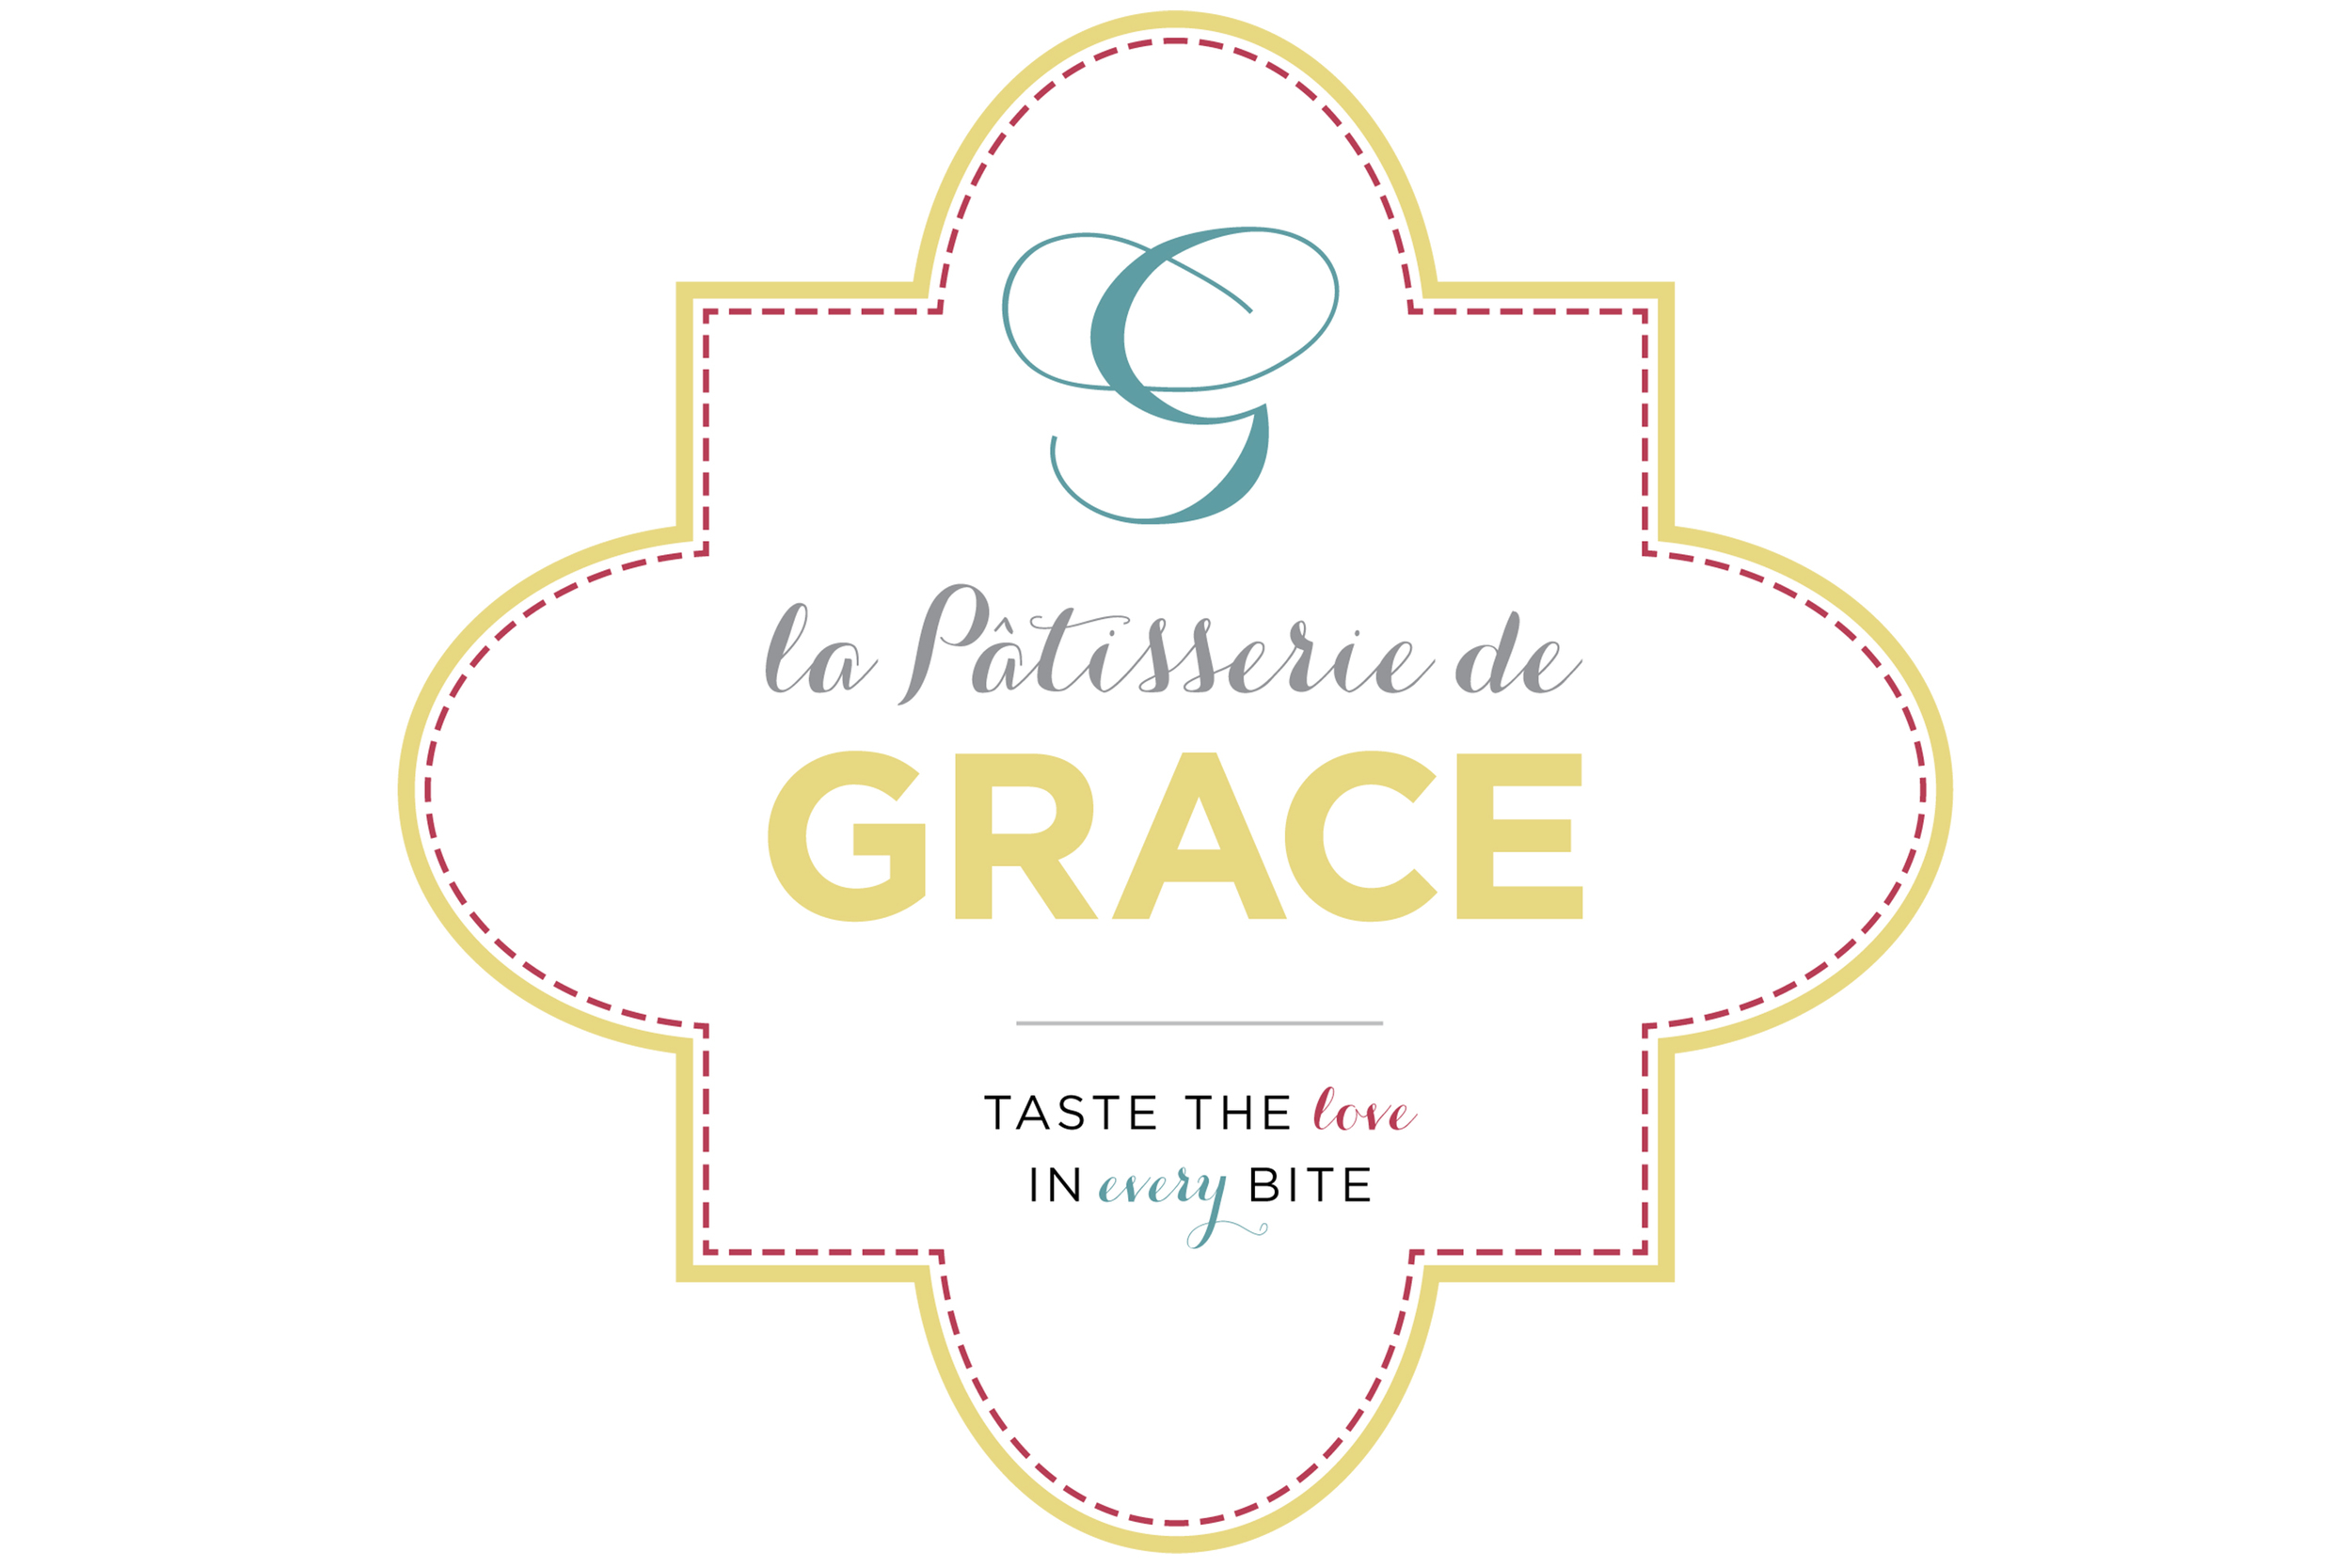 New branding, logo and tagline for La Patisserie de Grace, taste the love in every bite.